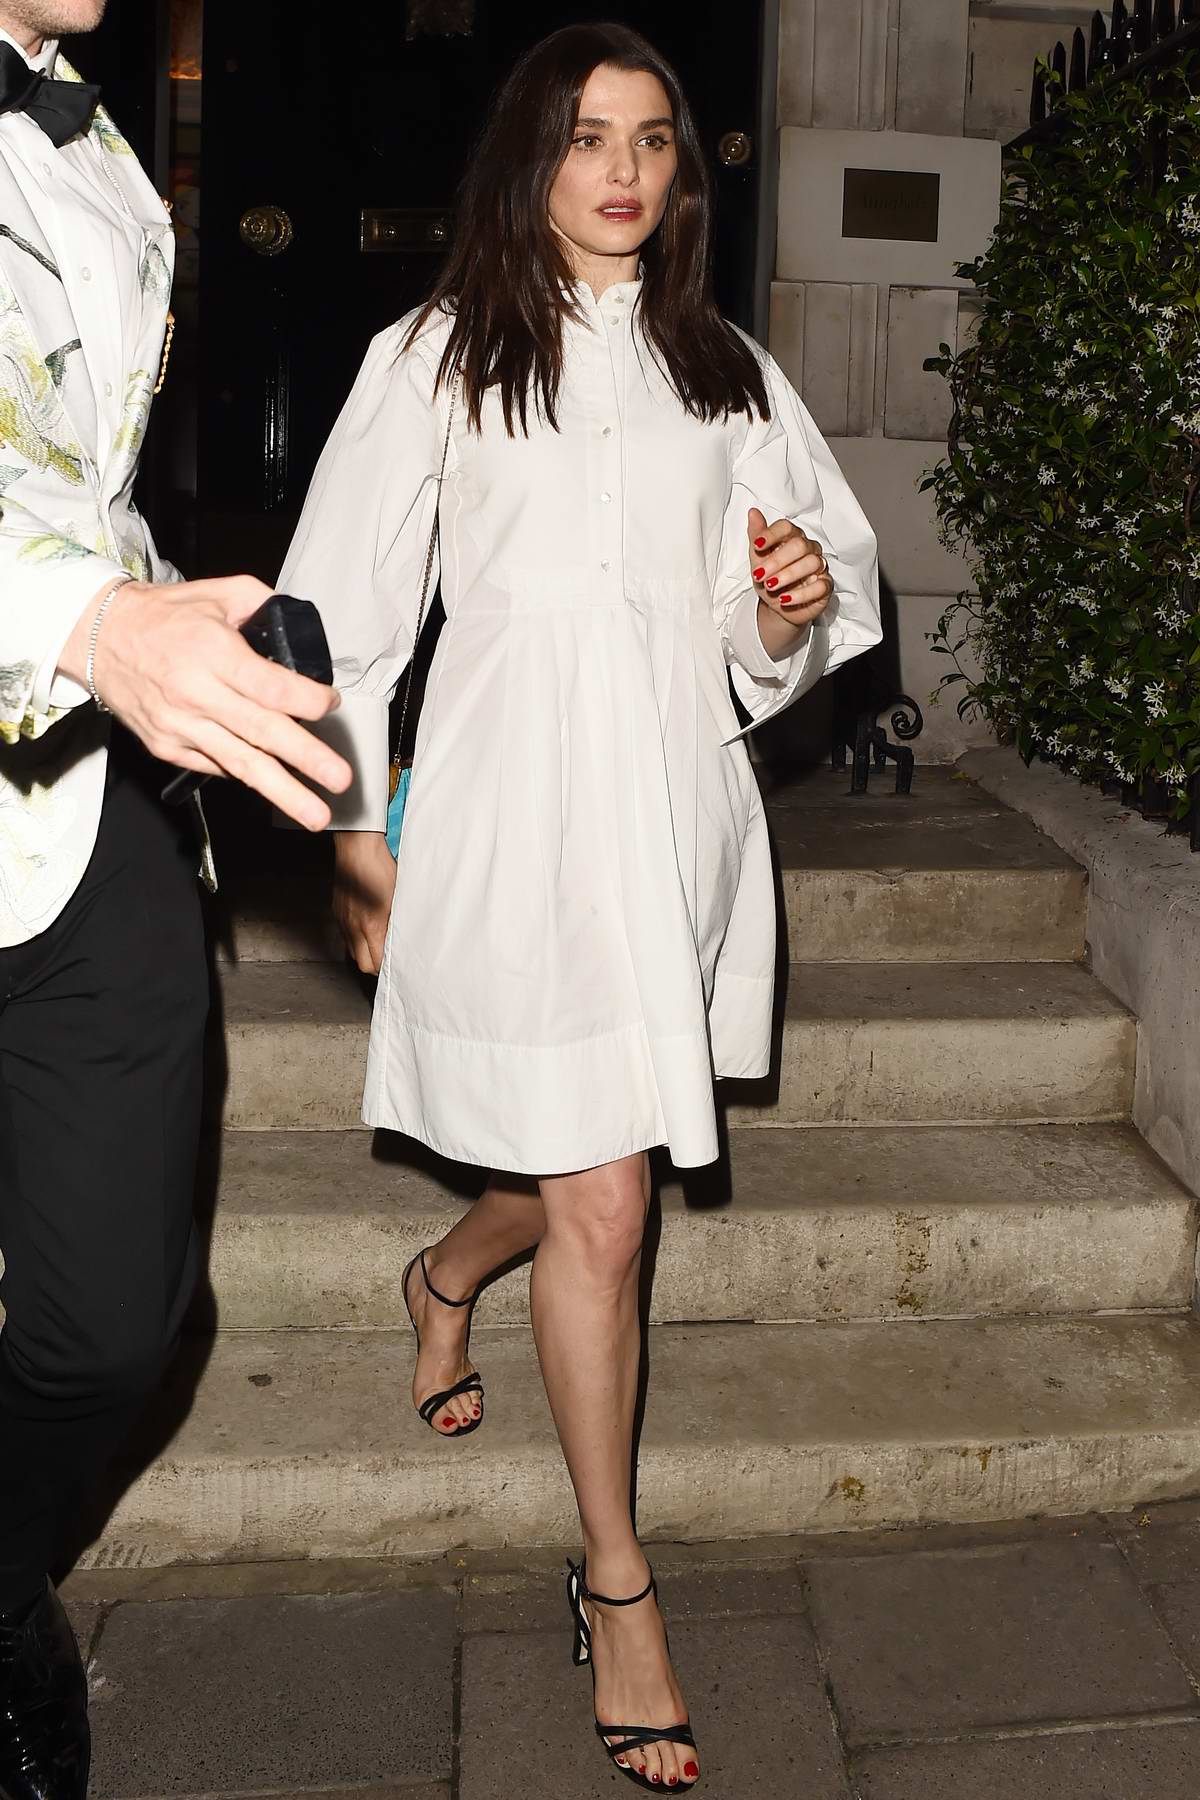 Rachel Weisz looks classy in a white dress as she leaves Annabel's Club in London, UK